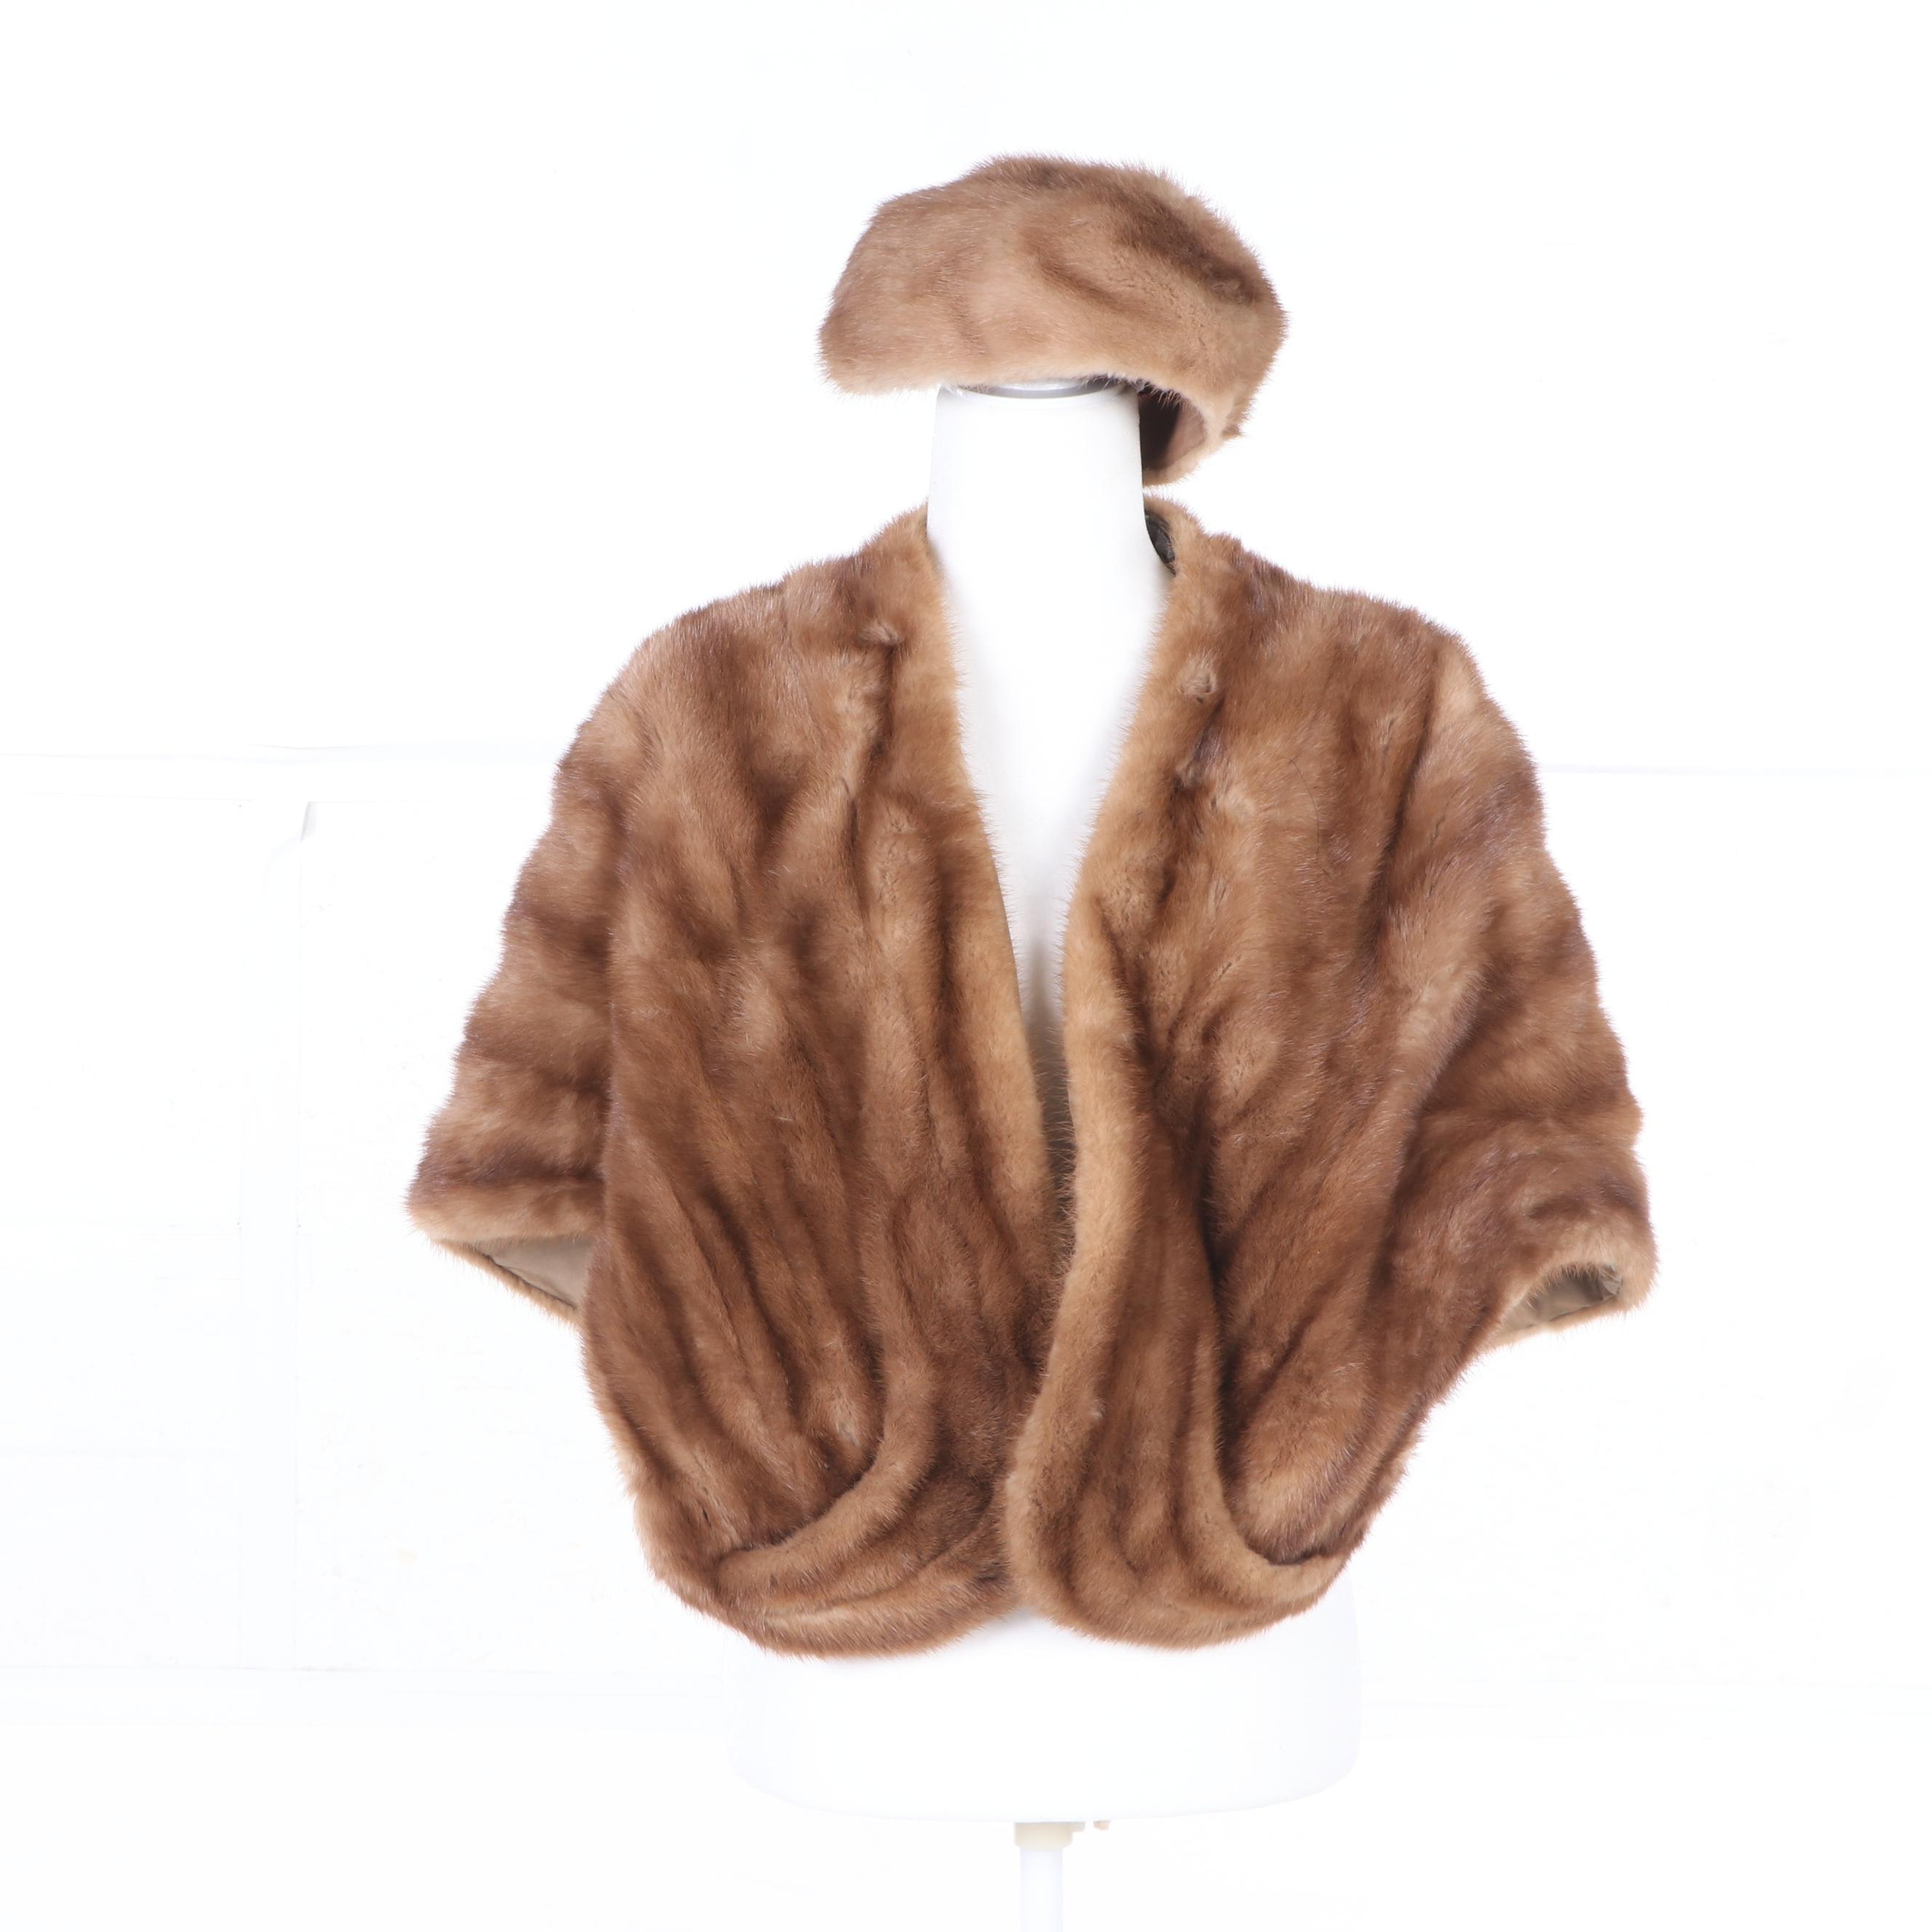 Polonsky-Kane-Schuman Mink Fur Stole and Monsieur Jacques Mink Fur Hat, Vintage